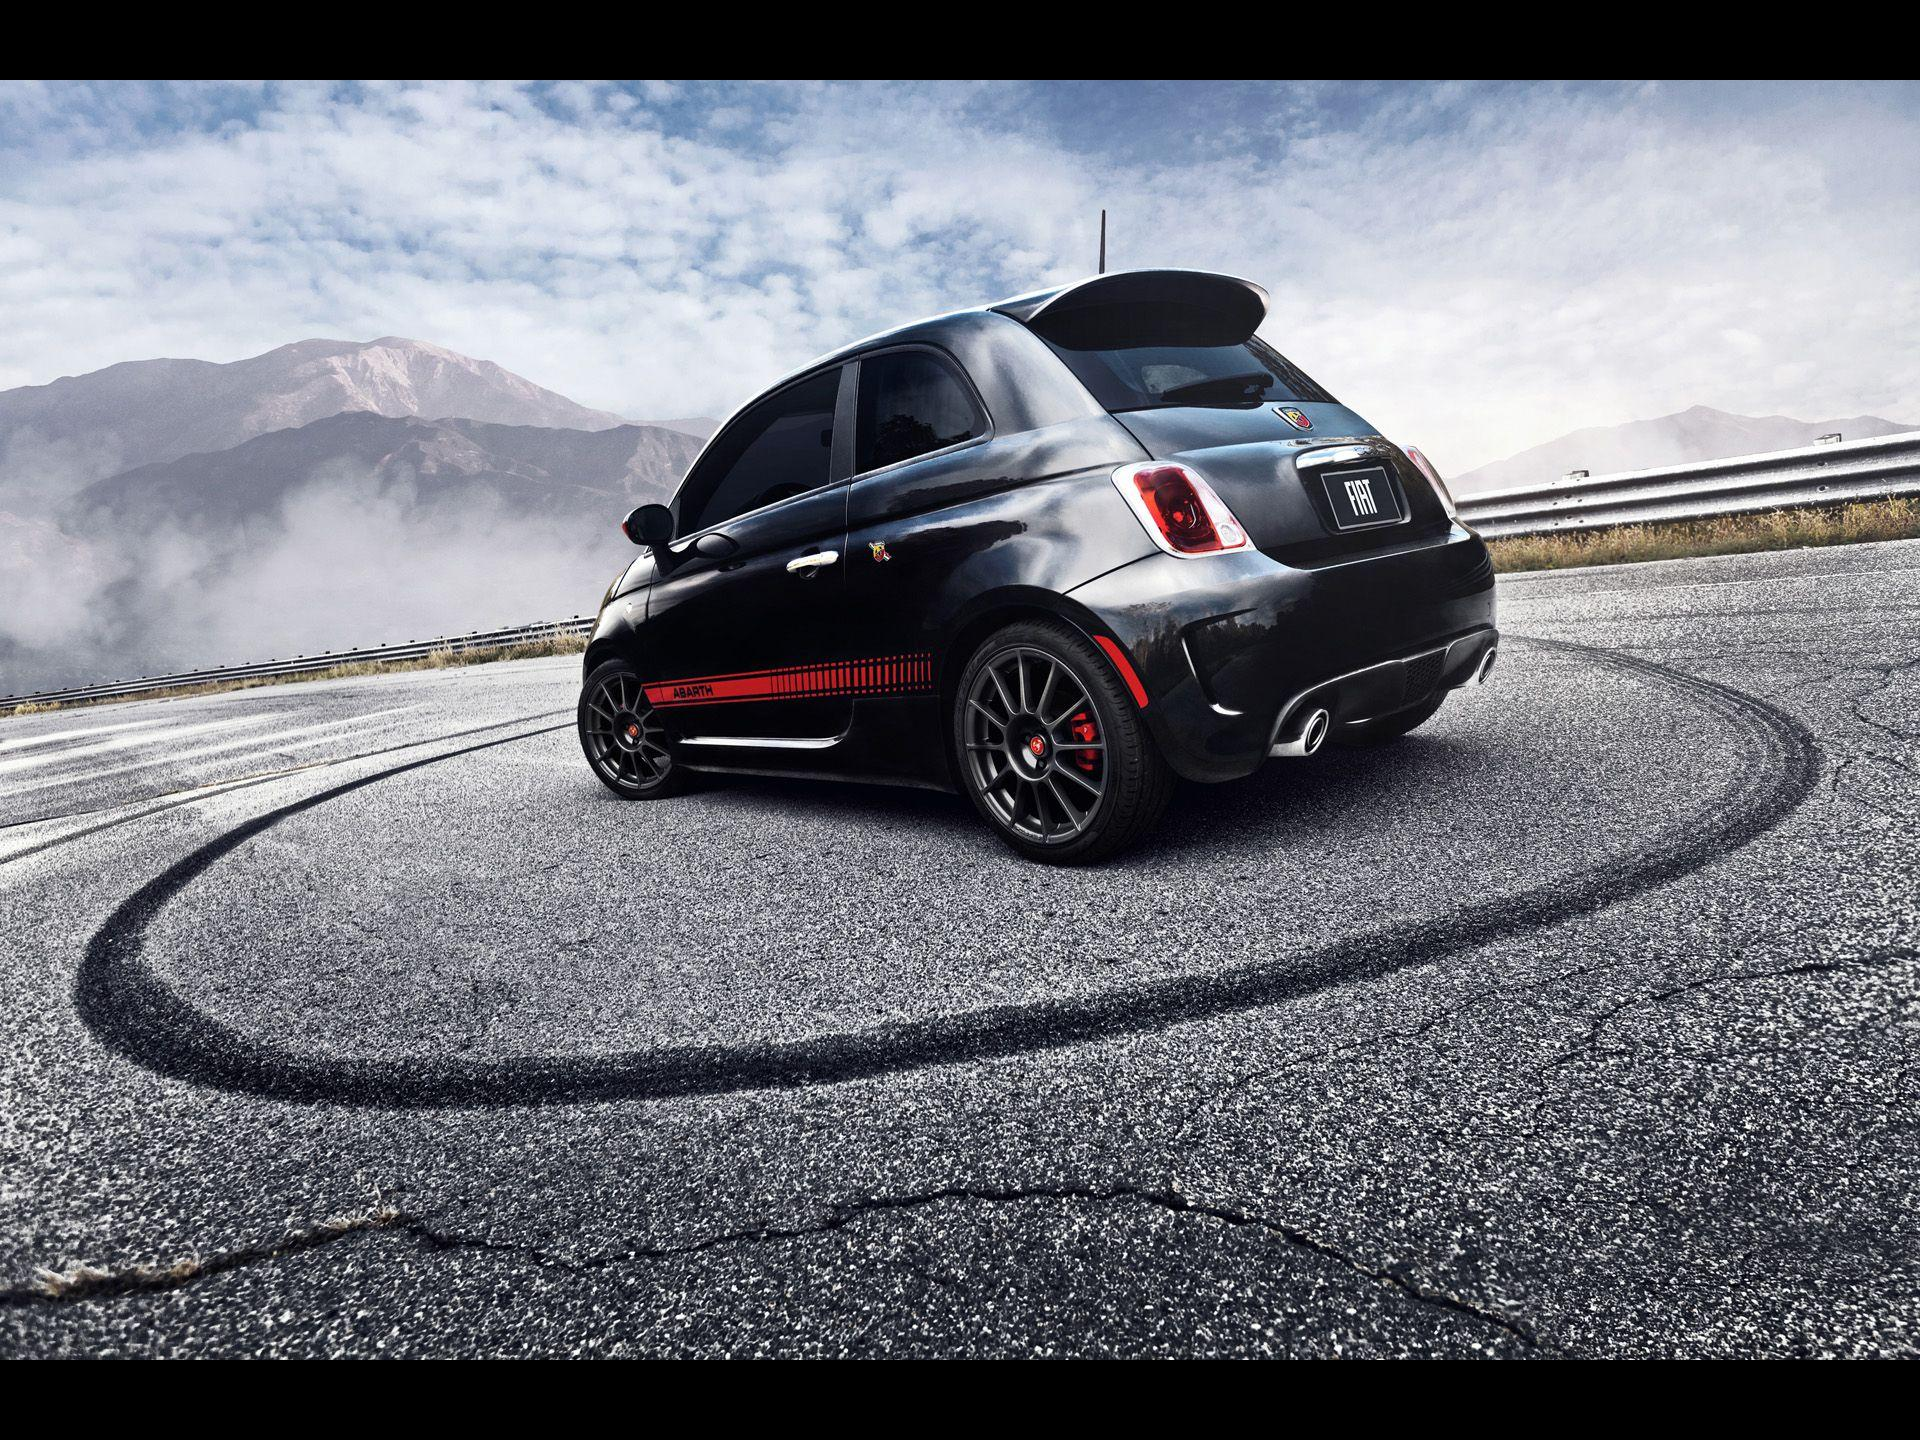 Fiat 500 Abarth Circle wallpapers | Fiat 500 Abarth Circle stock ...